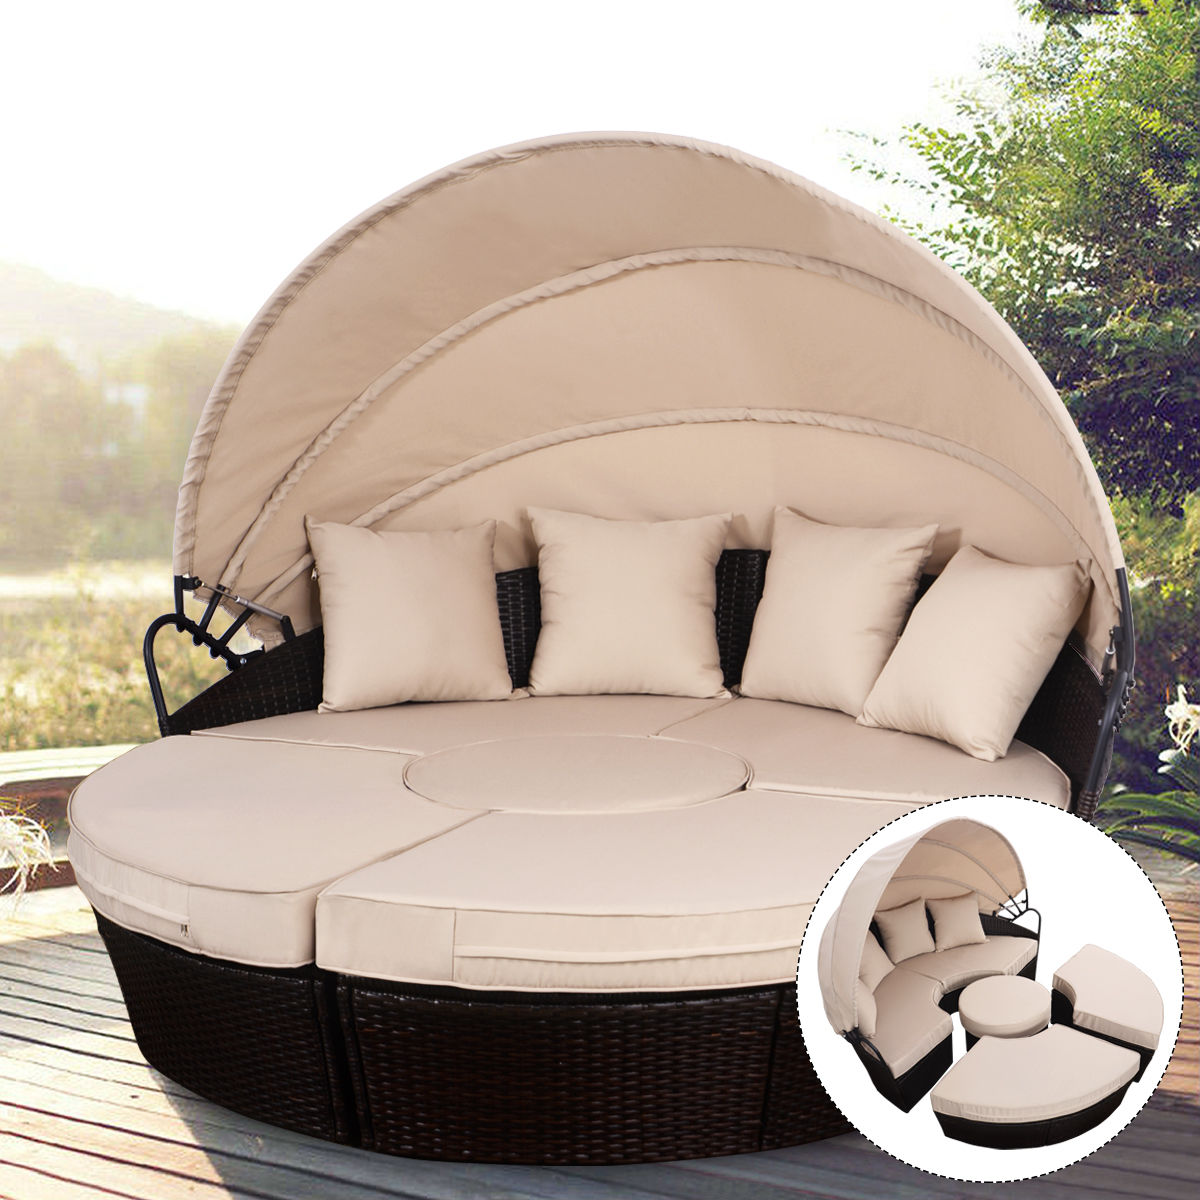 costway outdoor mix brown rattan patio sofa furniture round retractable canopy daybed